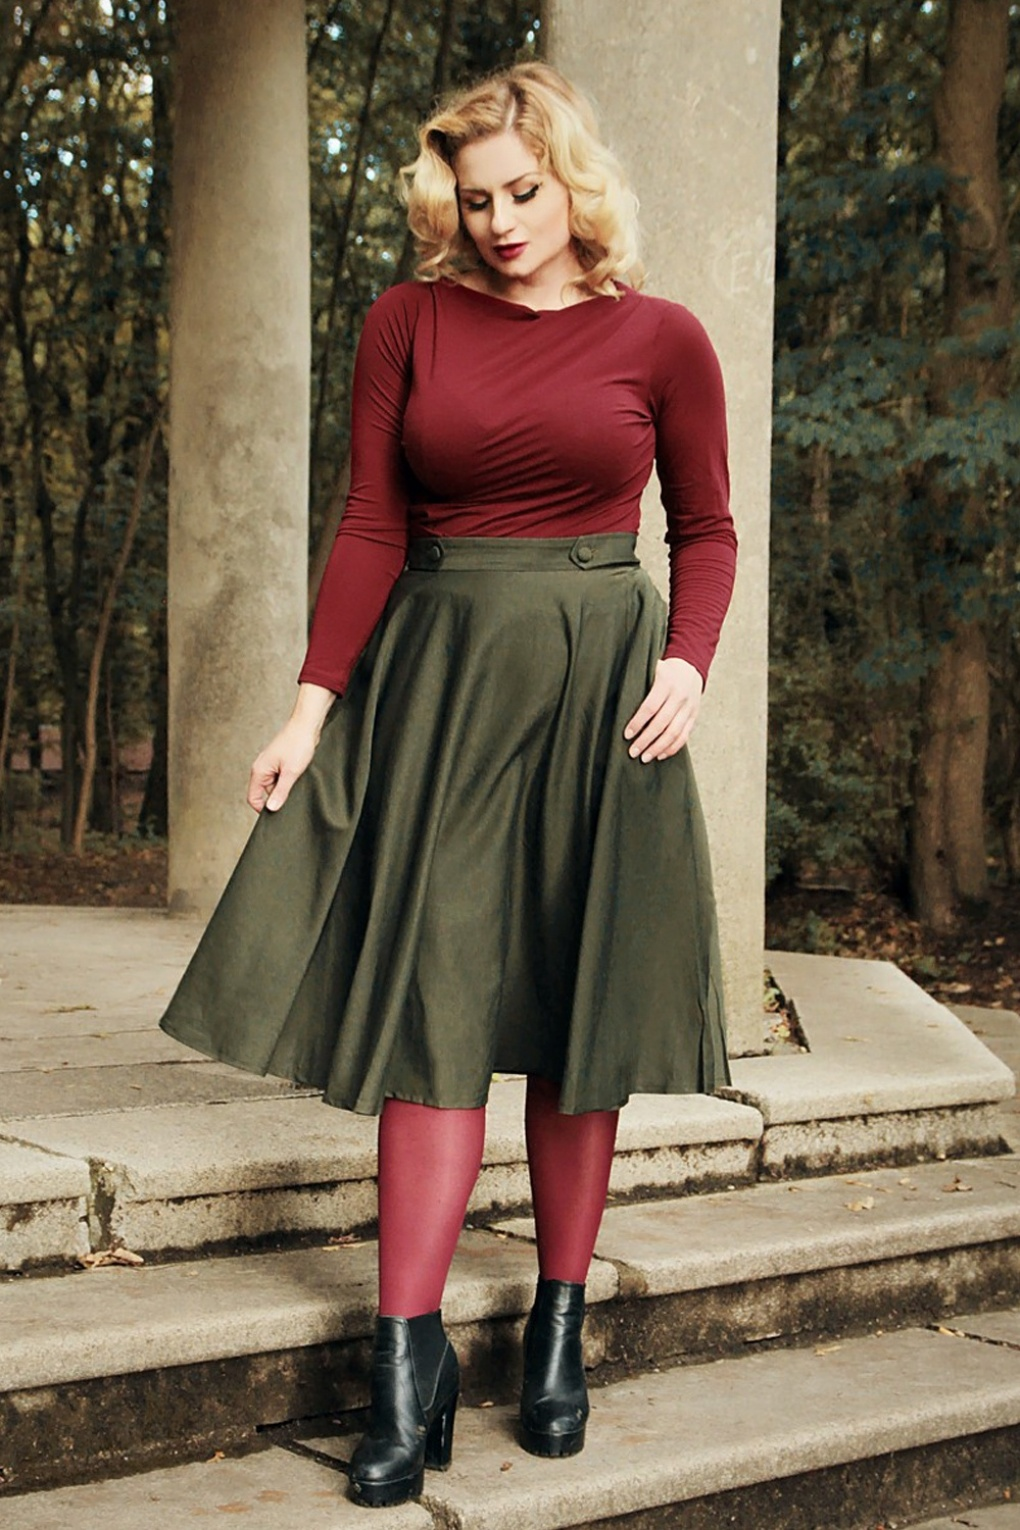 50s Skirt Styles | Poodle Skirts, Circle Skirts, Pencil Skirts 1950s 50s Di Di Swing Skirt in Olive Green £38.32 AT vintagedancer.com